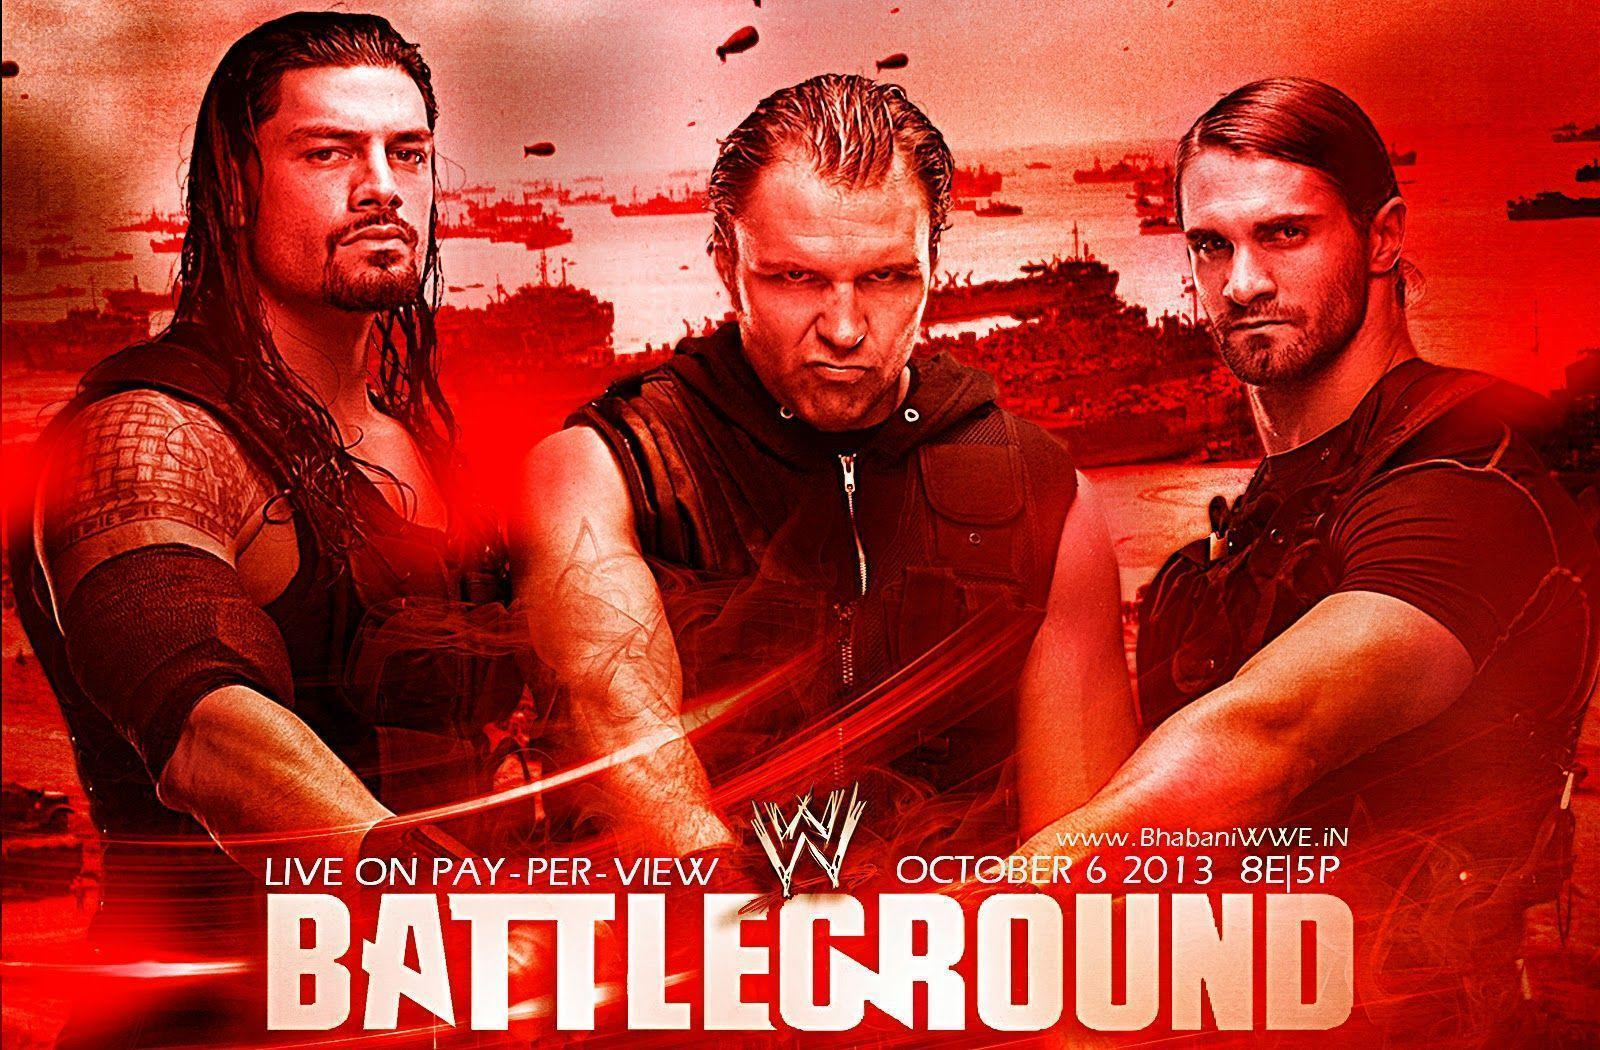 Wwe shield wallpapers wallpaper cave - Download pictures of the shield wwe ...